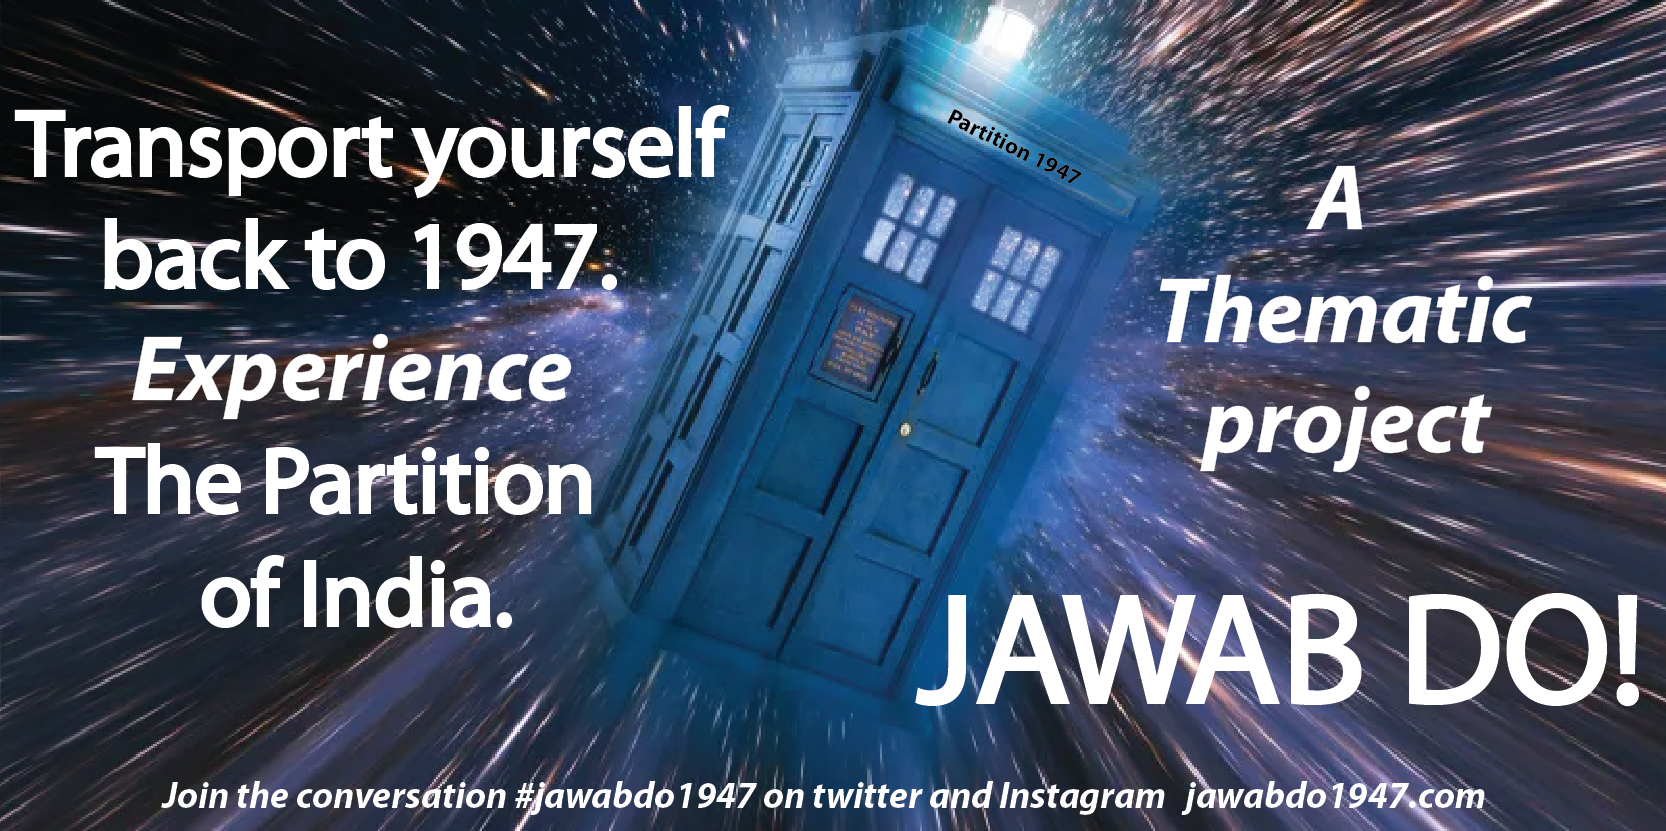 JAWAB DO! is a creative way to learn about The Partition of India using a thematic approach.